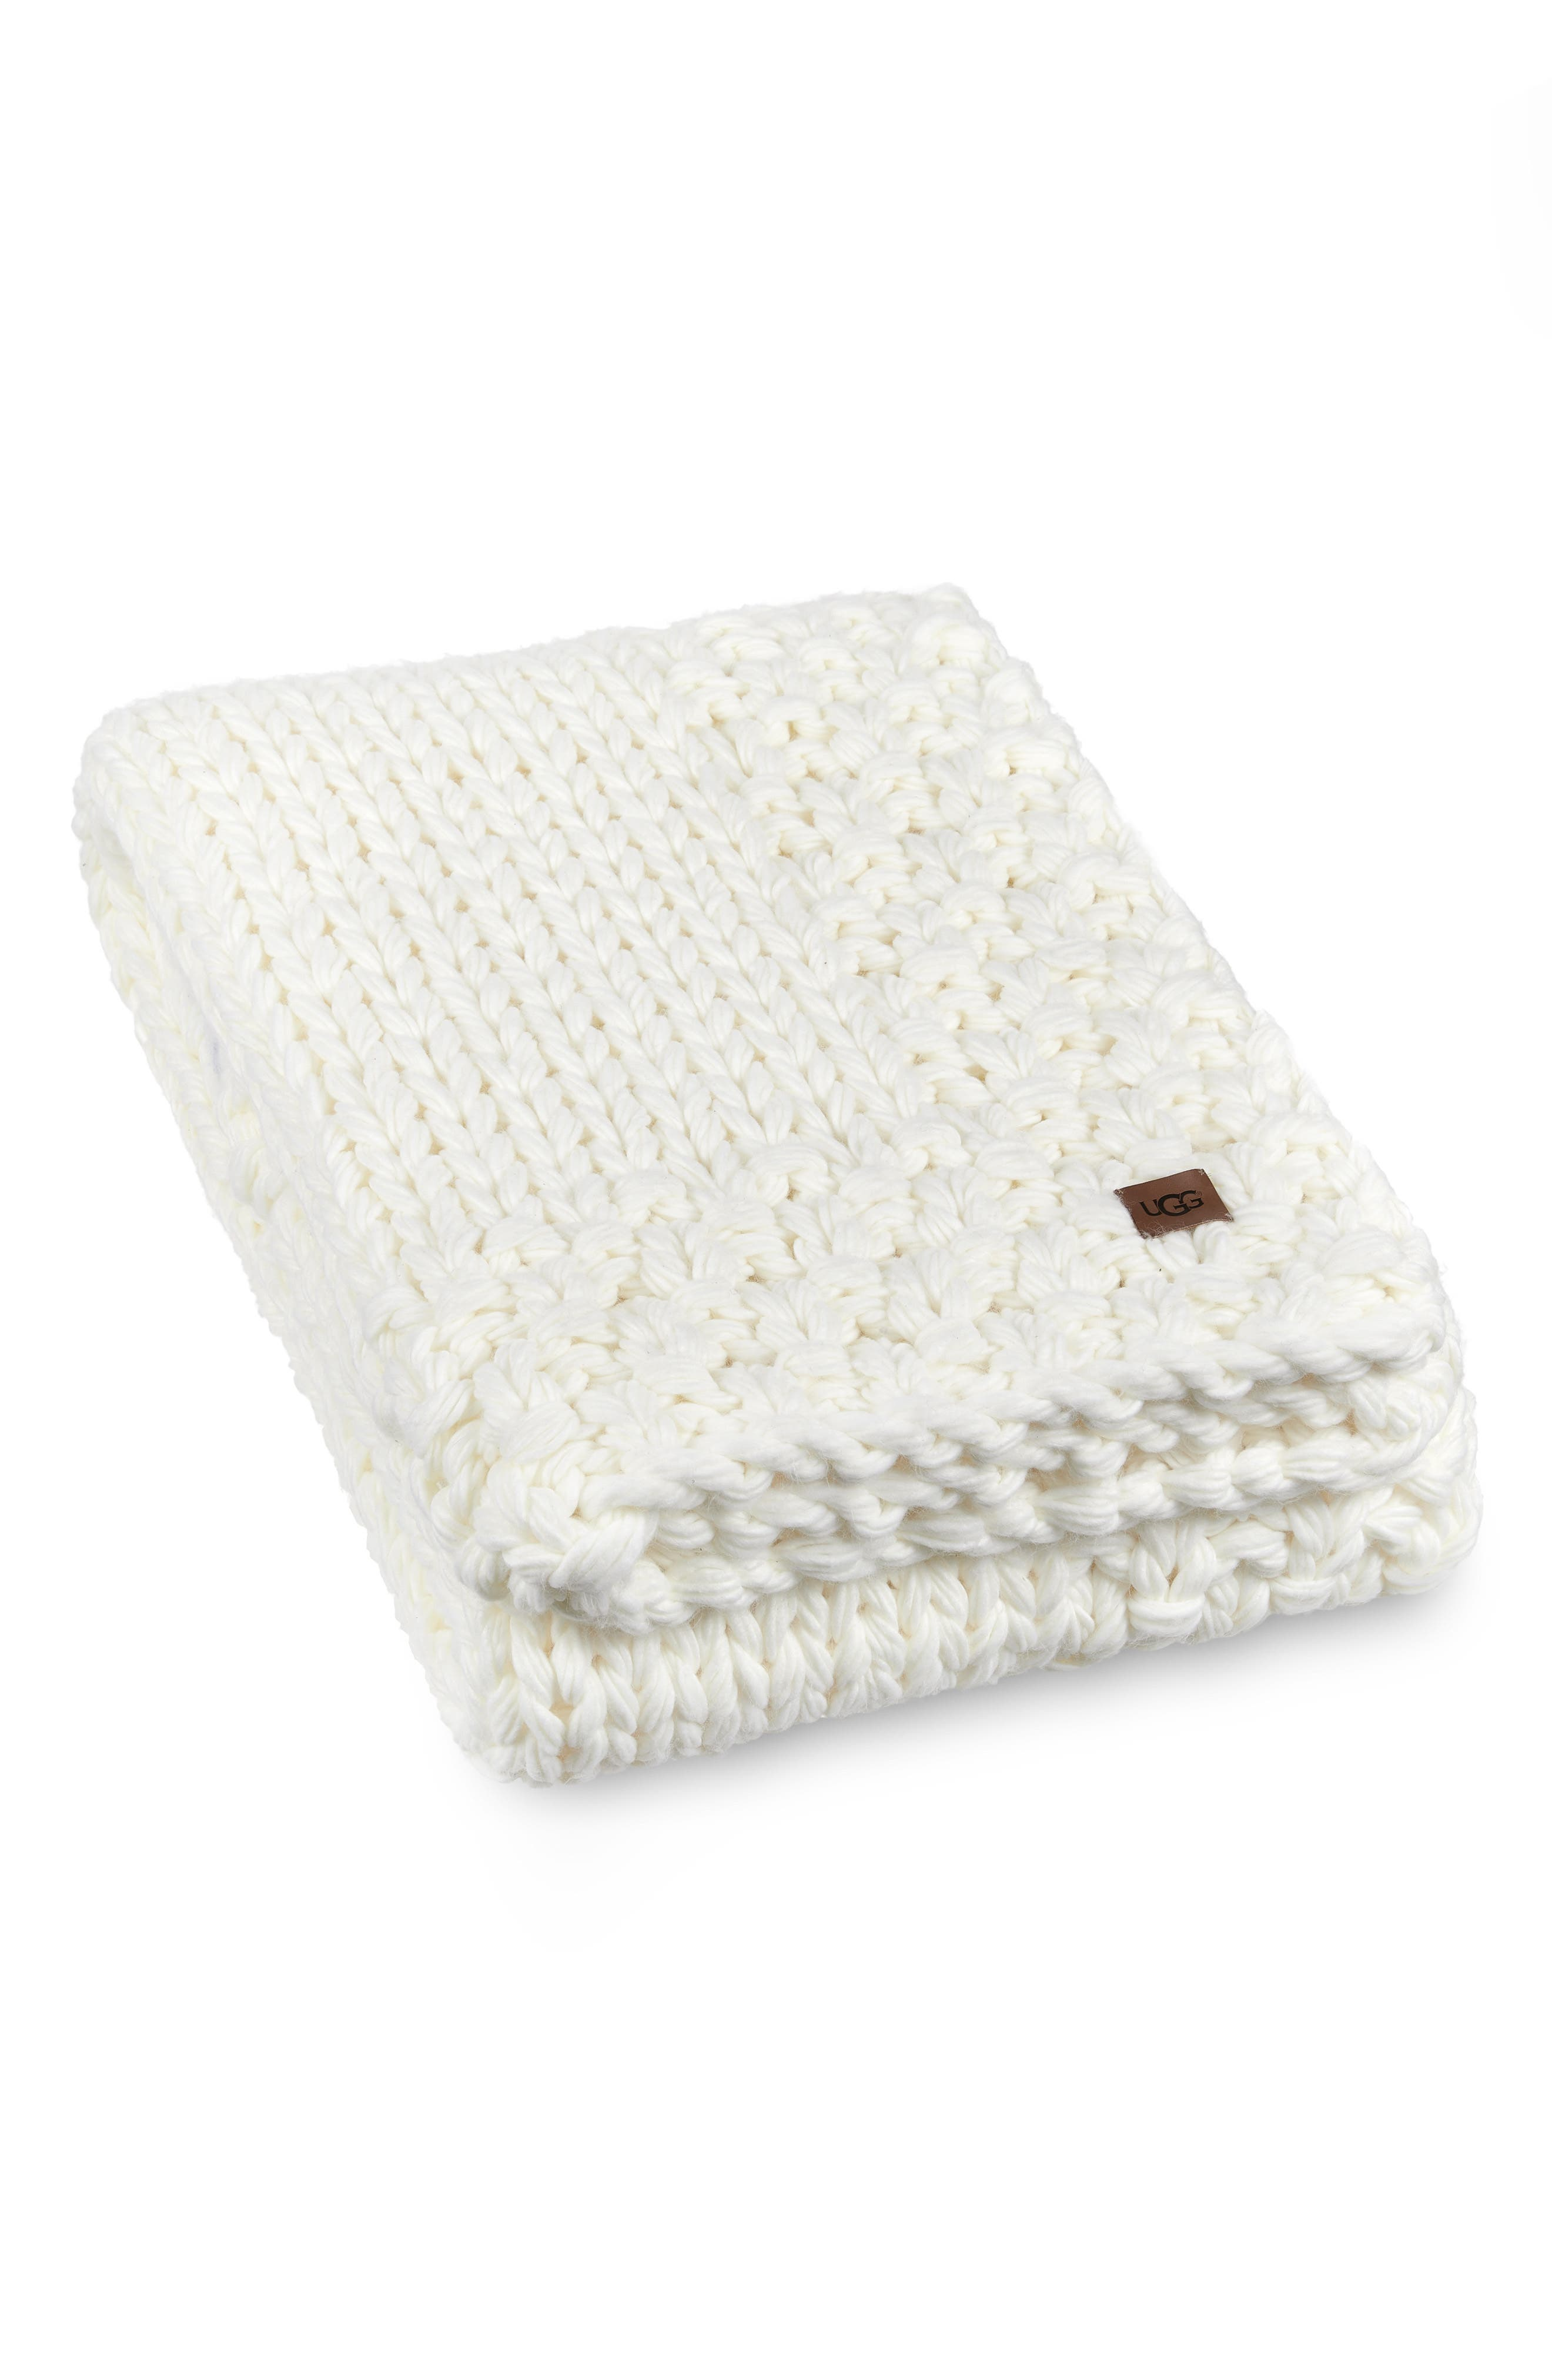 Sweater knit in soft, thick yarns, this throw blanket makes a marvelously cozy addition to any couch, chair or bedroom set. Style Name: UGG Averil Throw Blanket. Style Number: 5941633. Available in stores.